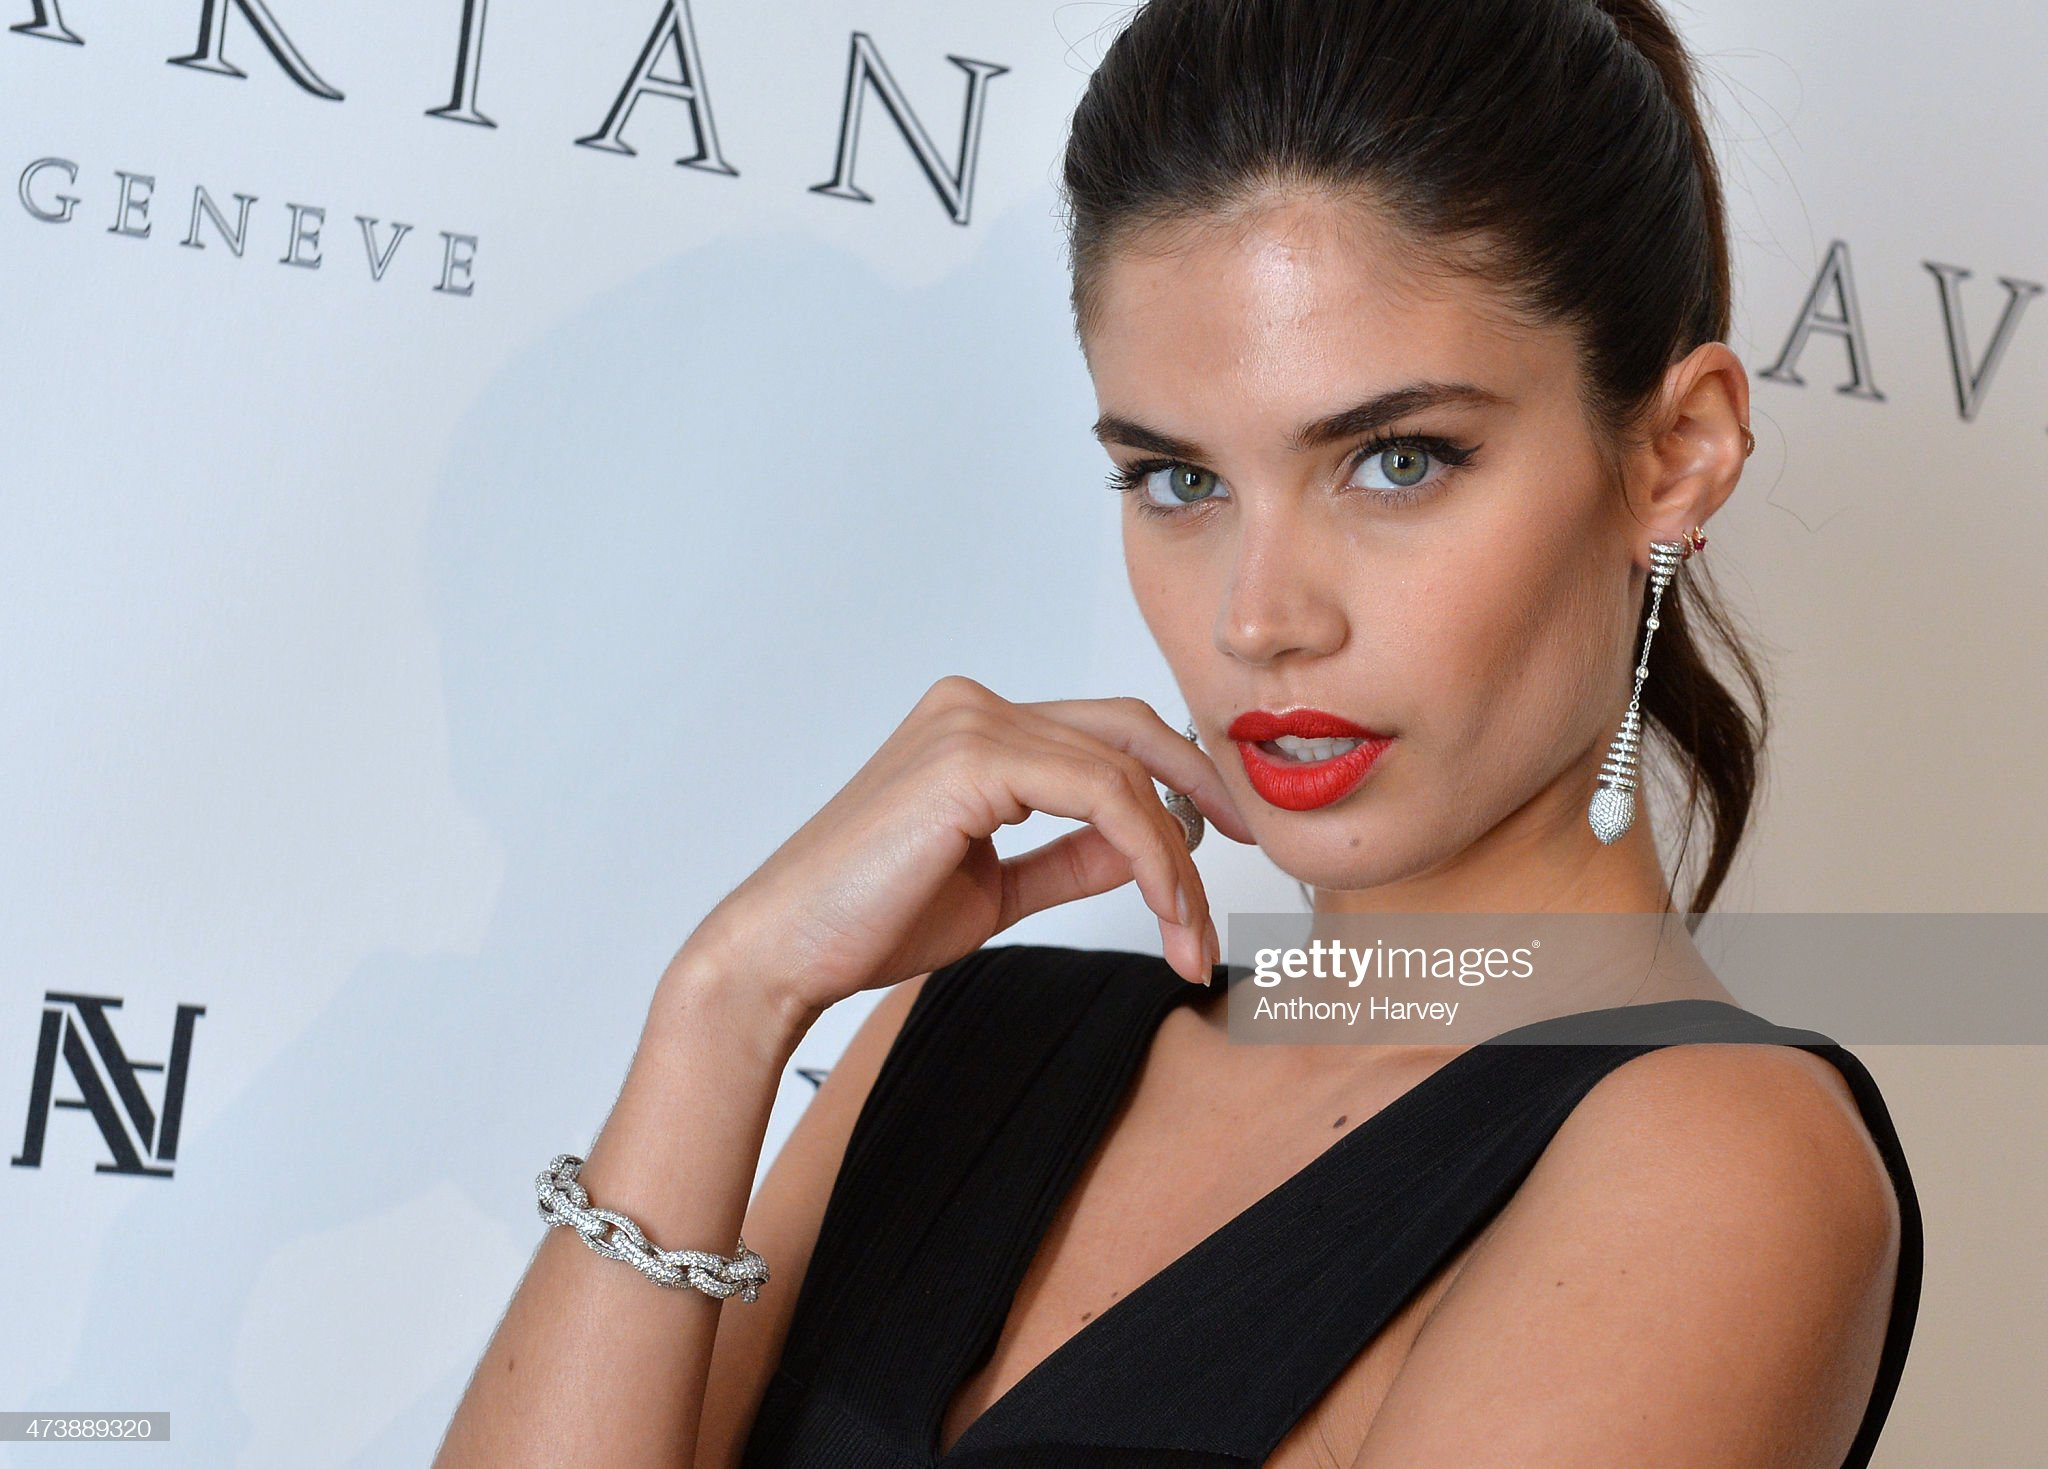 Sara Sampaio (galería de fotos) - pictures Sara-sampaio-visits-the-avakian-suite-during-the-68th-annual-cannes-picture-id473889320?s=2048x2048